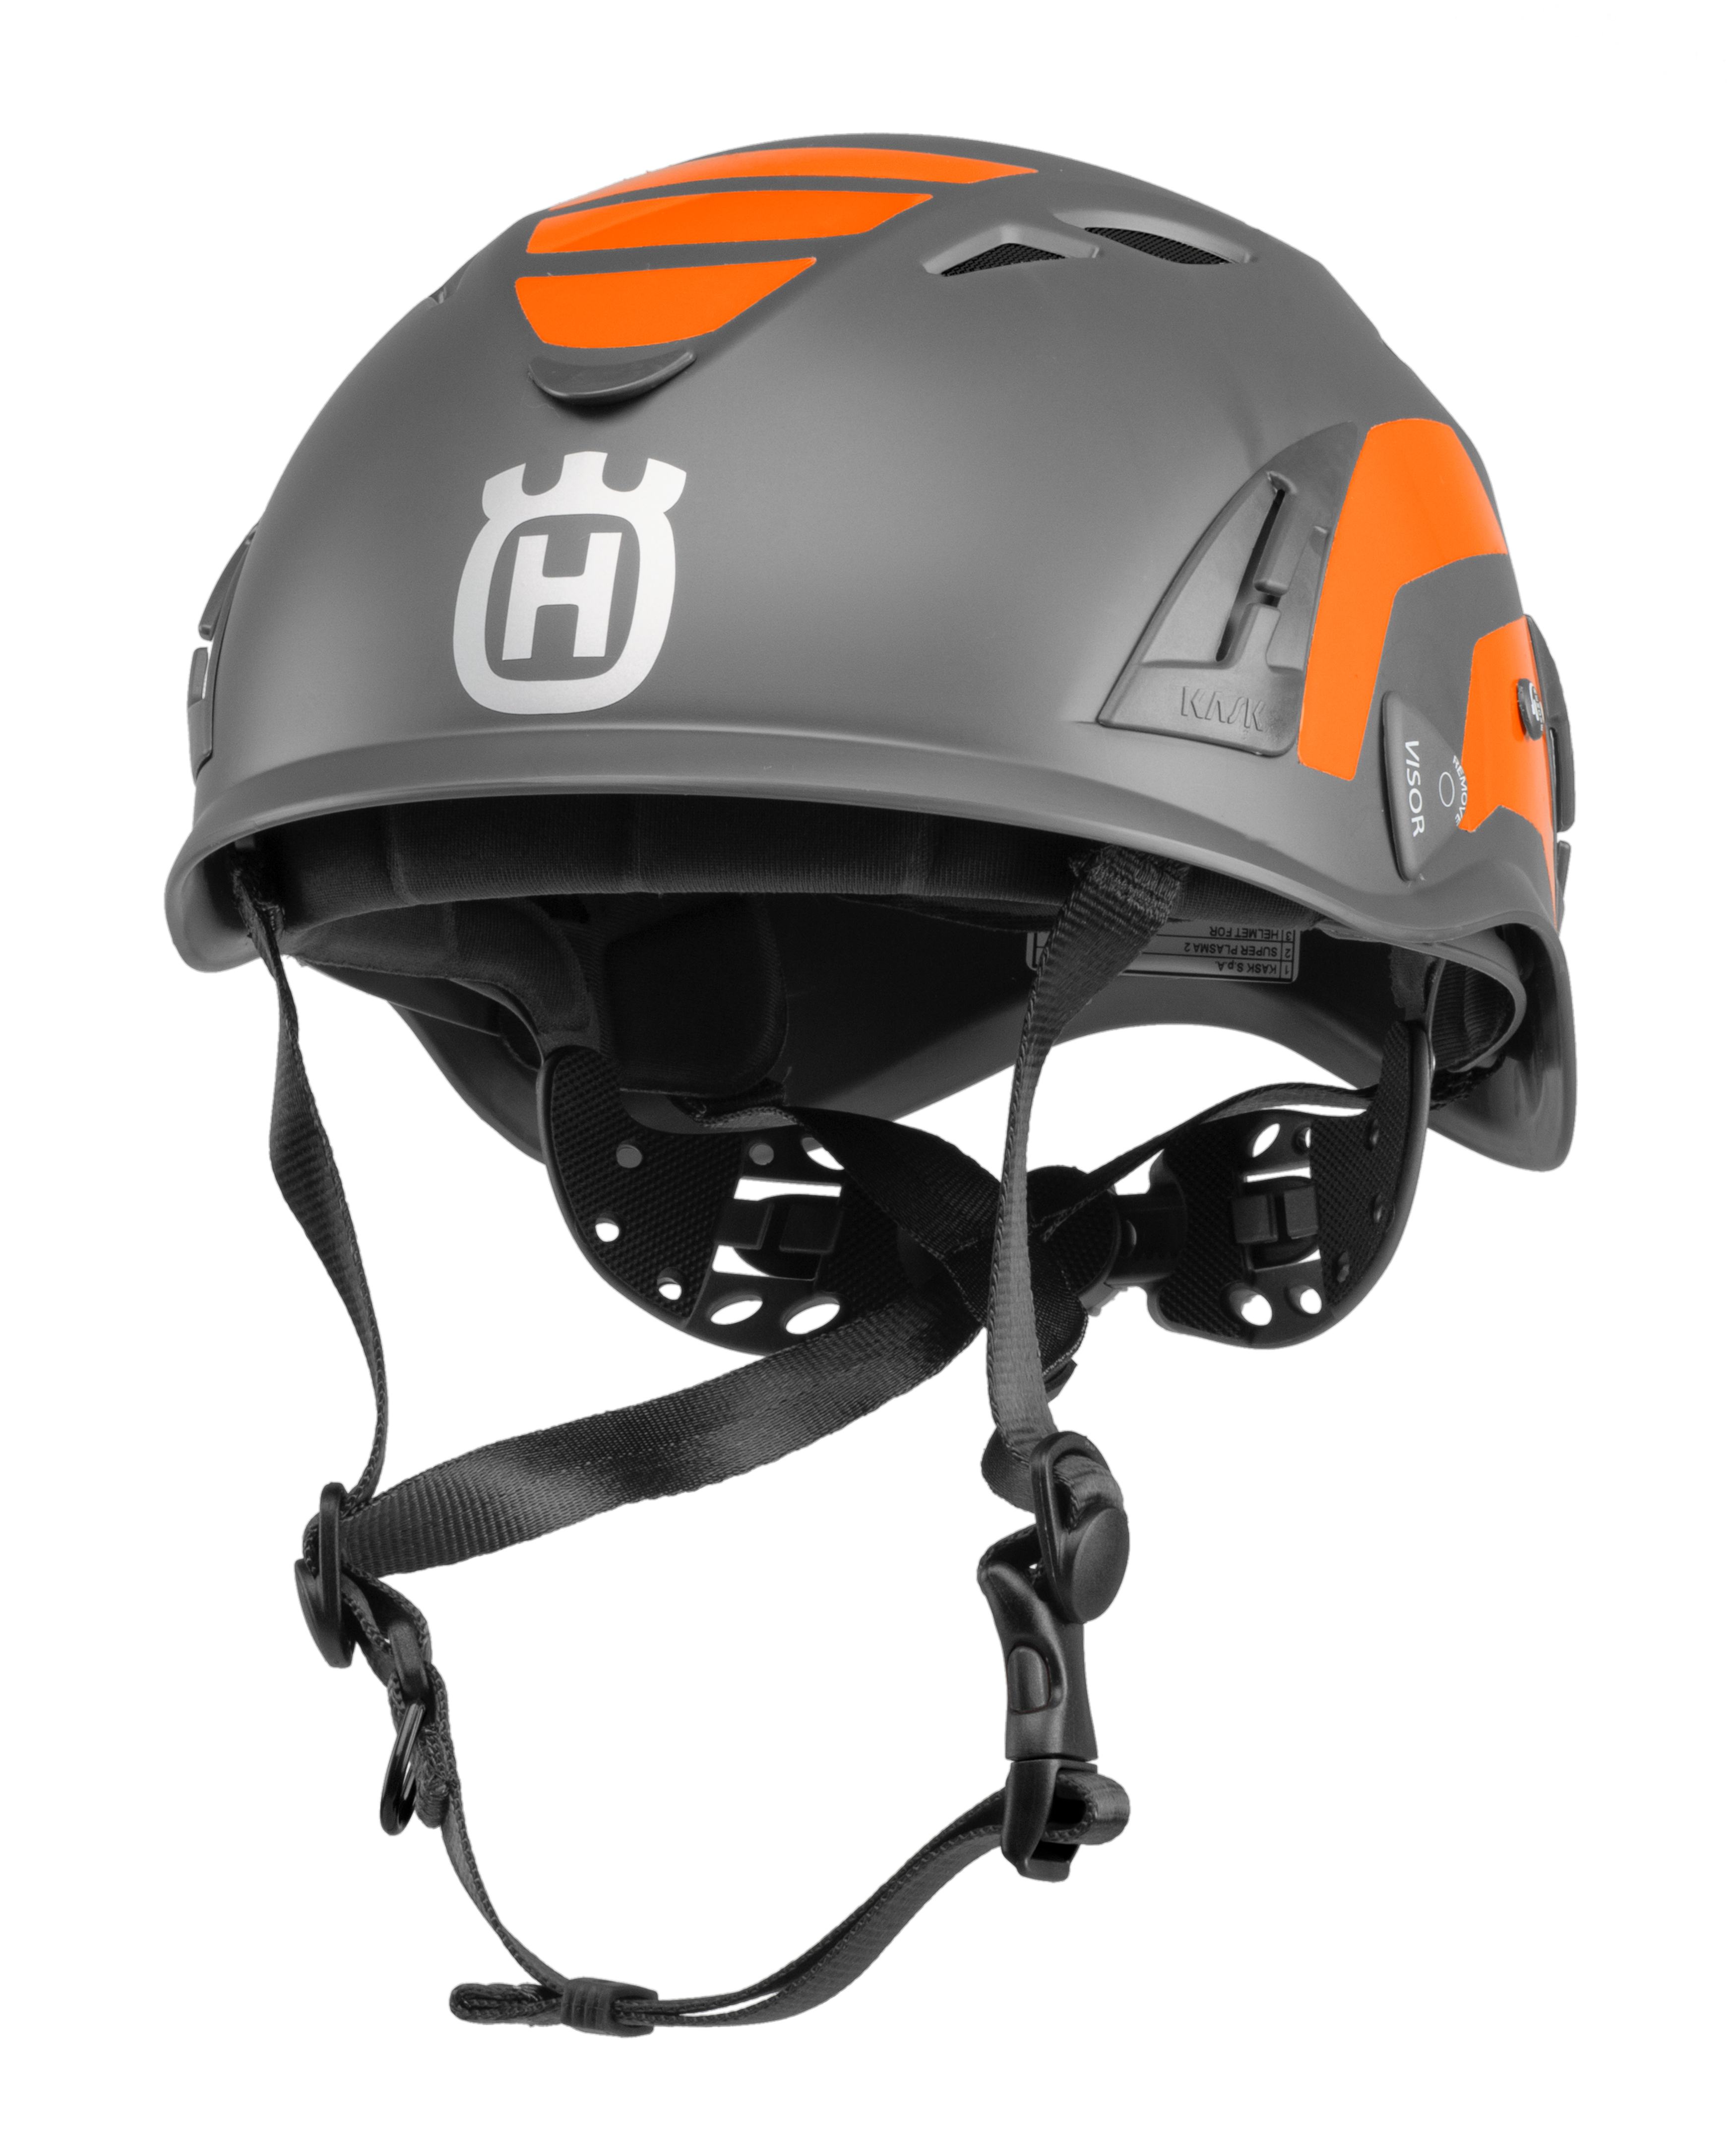 Image for Elevation™ Arborist Helmet                                                                                                     from HusqvarnaB2C